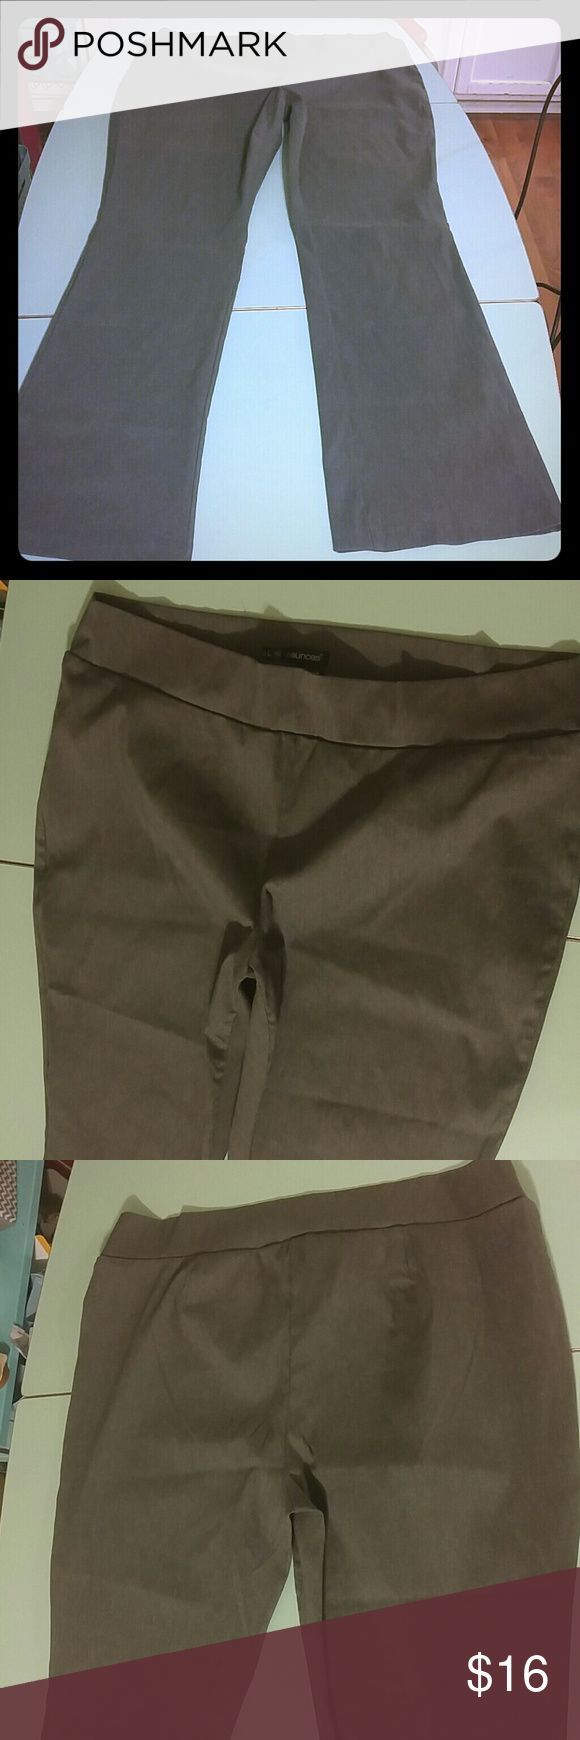 Maurices plus Gray smart dress pant 3L (3xl) Maurices plus size smart fit gray slim boot pant. Size plus 3 long. 34 inch inseam. Maurices Pants